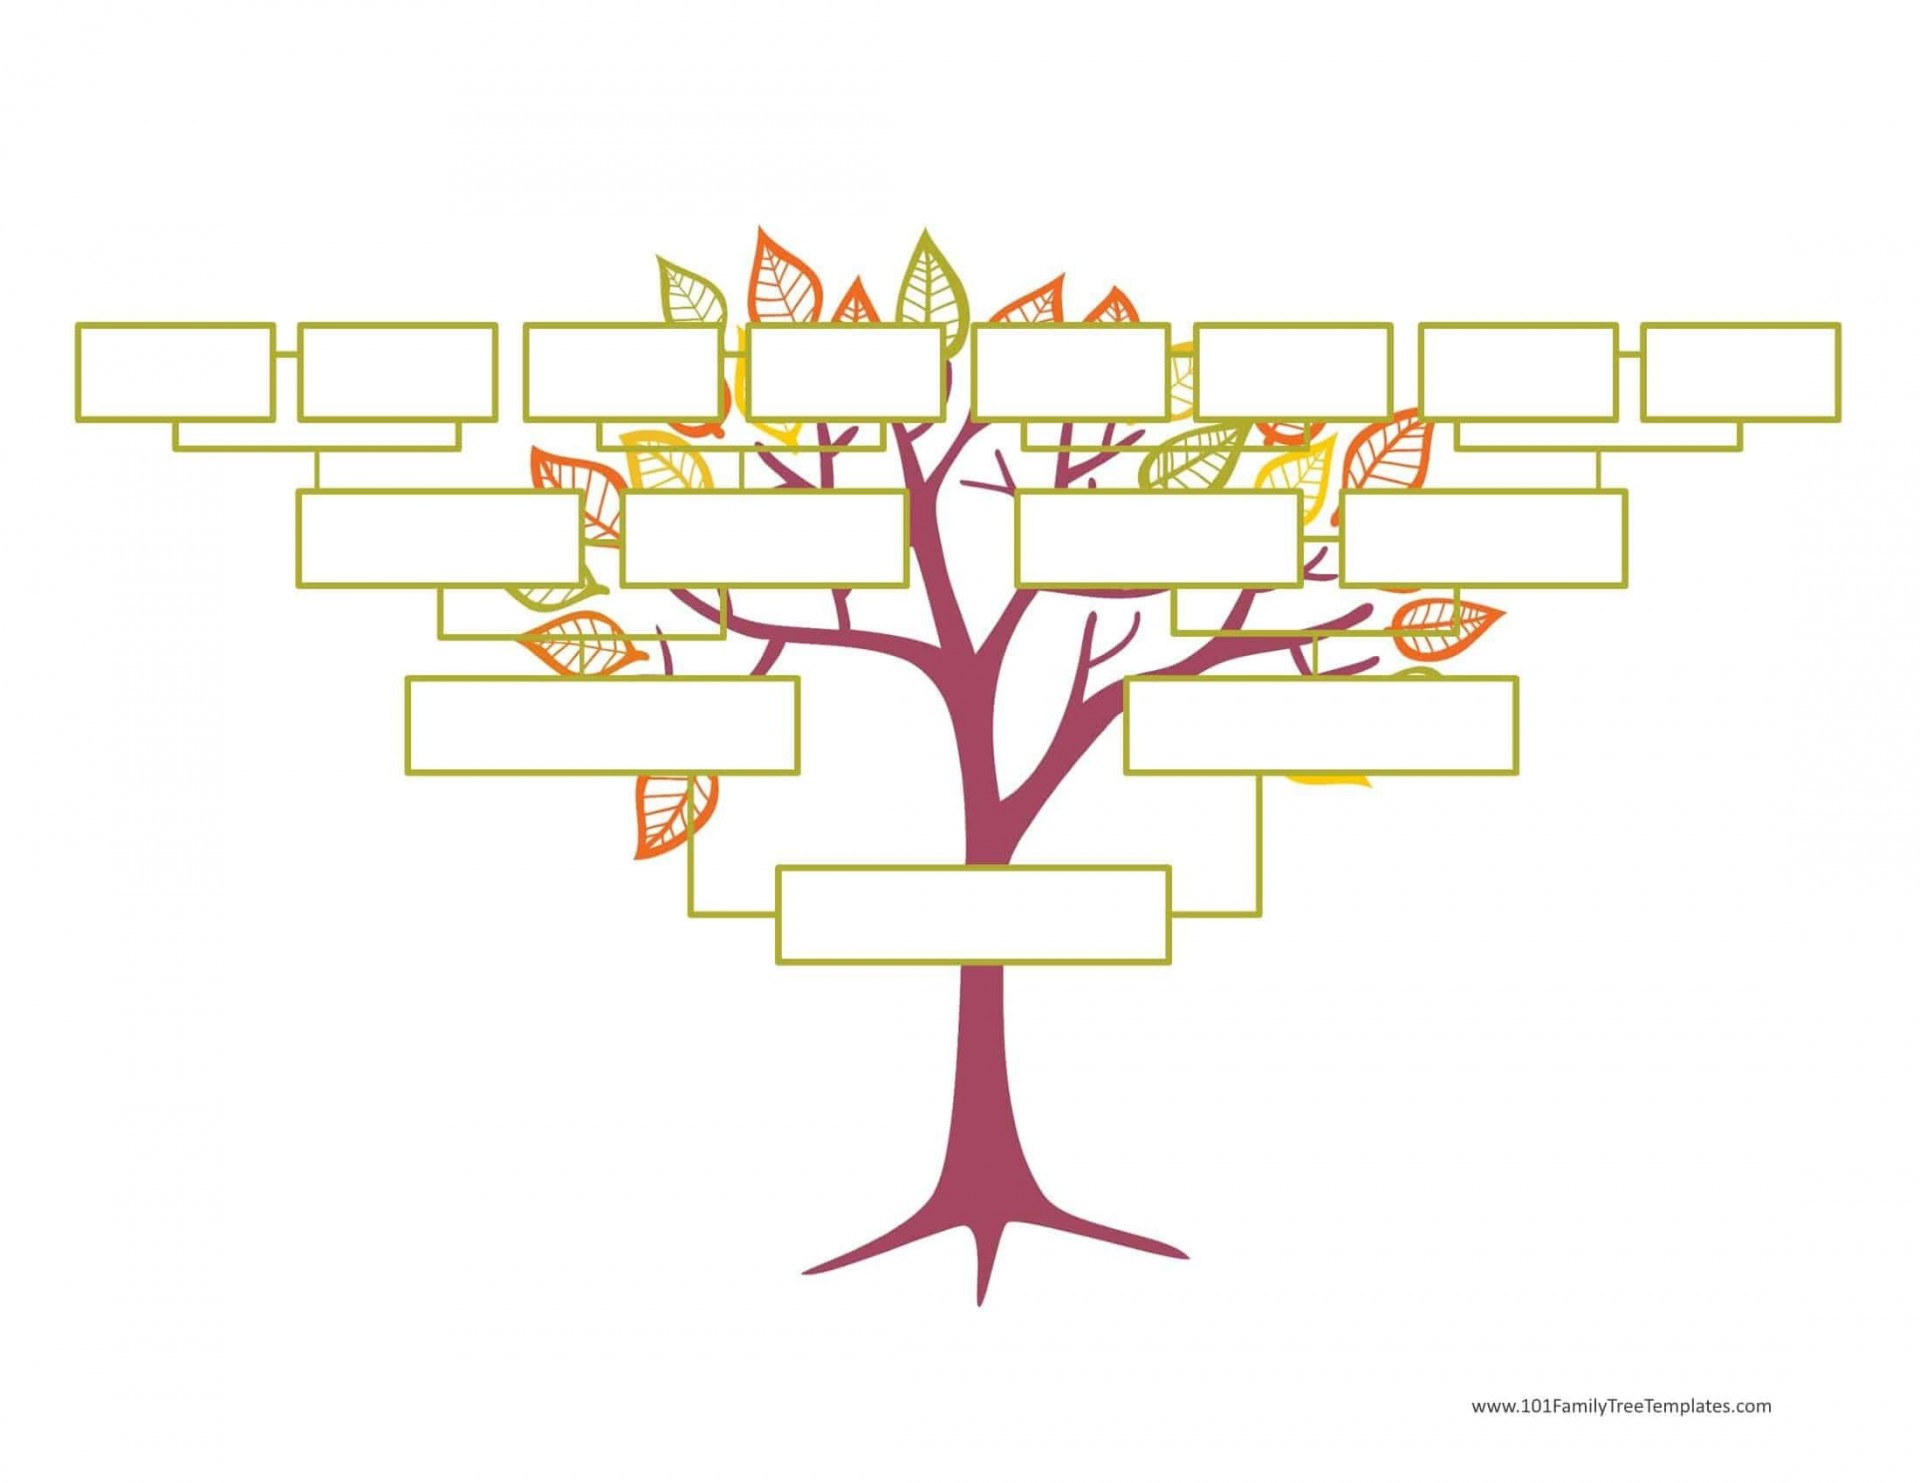 004 Wonderful Editable Family Tree Template Online Free Highest Clarity 1920